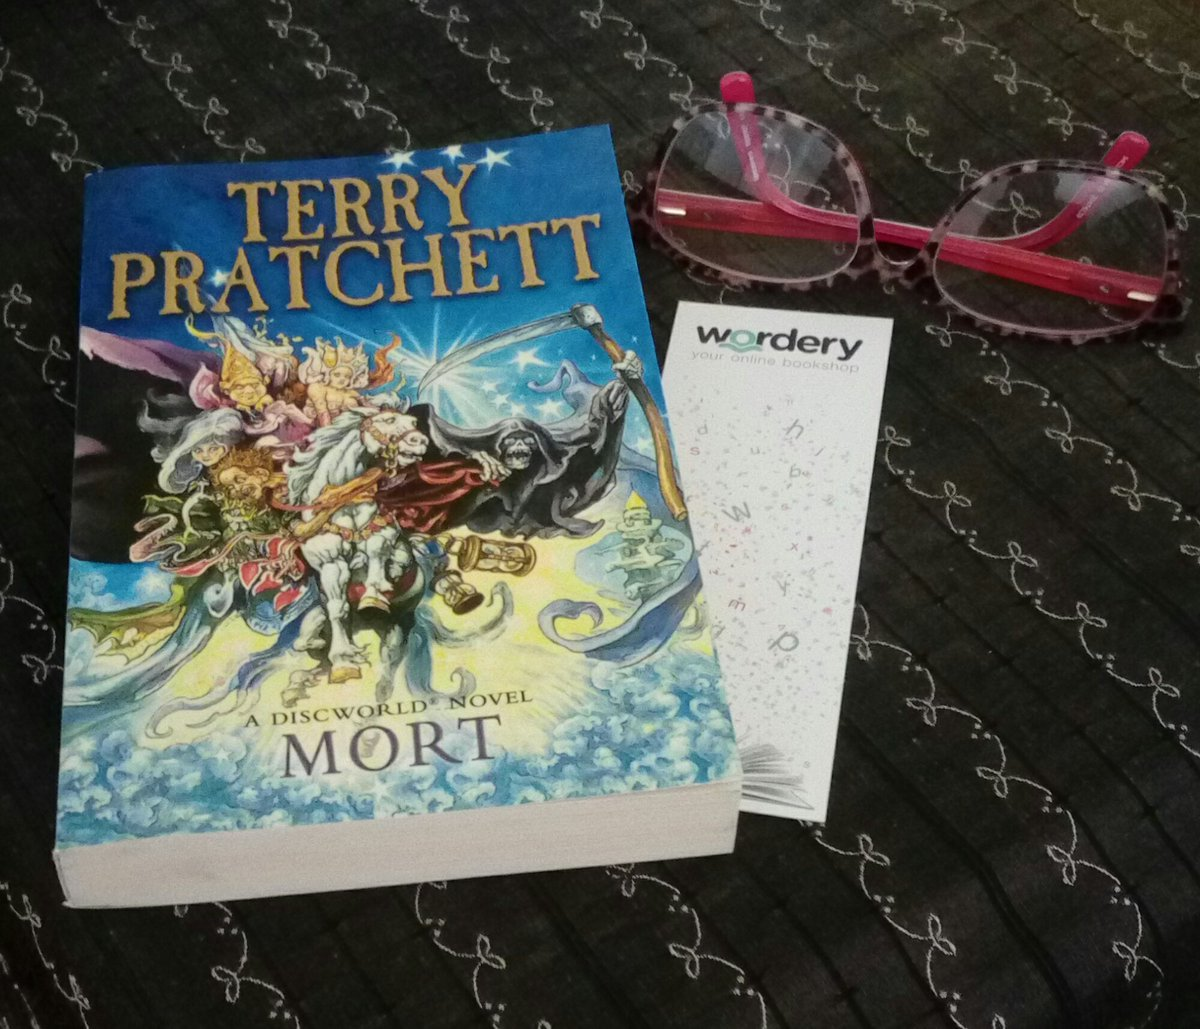 Choice of reading material for today with a @wordery bookmark as that&#39;s where I bought #Mort <br>http://pic.twitter.com/Dbid5X5TPk